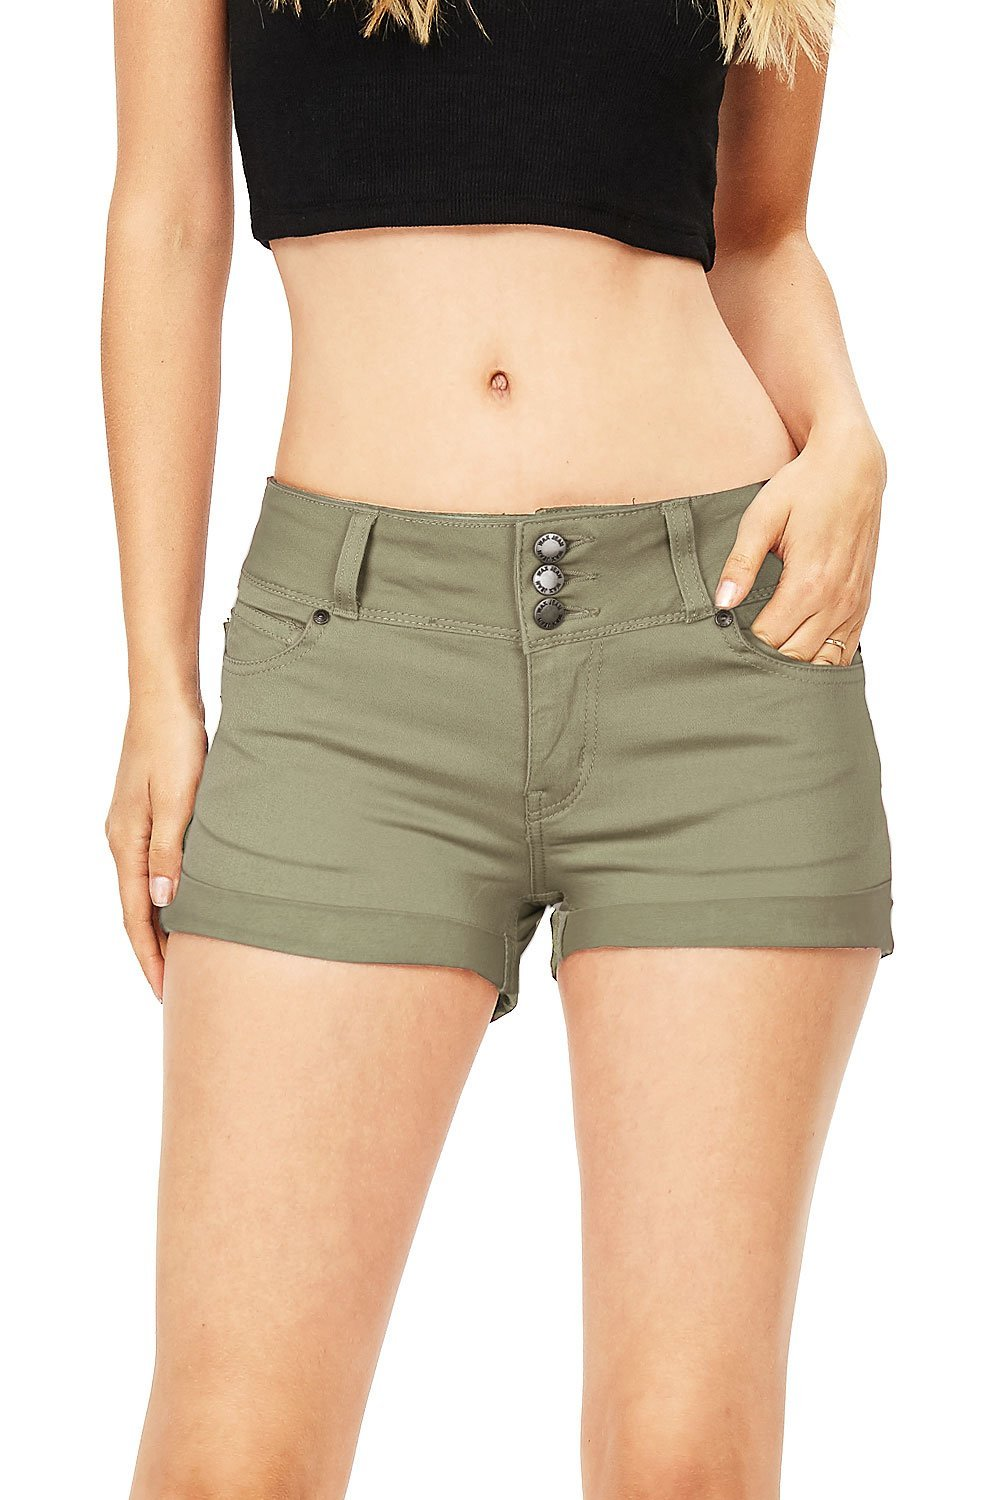 Wax Women's Juniors Casual Push up Fit Shorts (L, Dusty Olive)